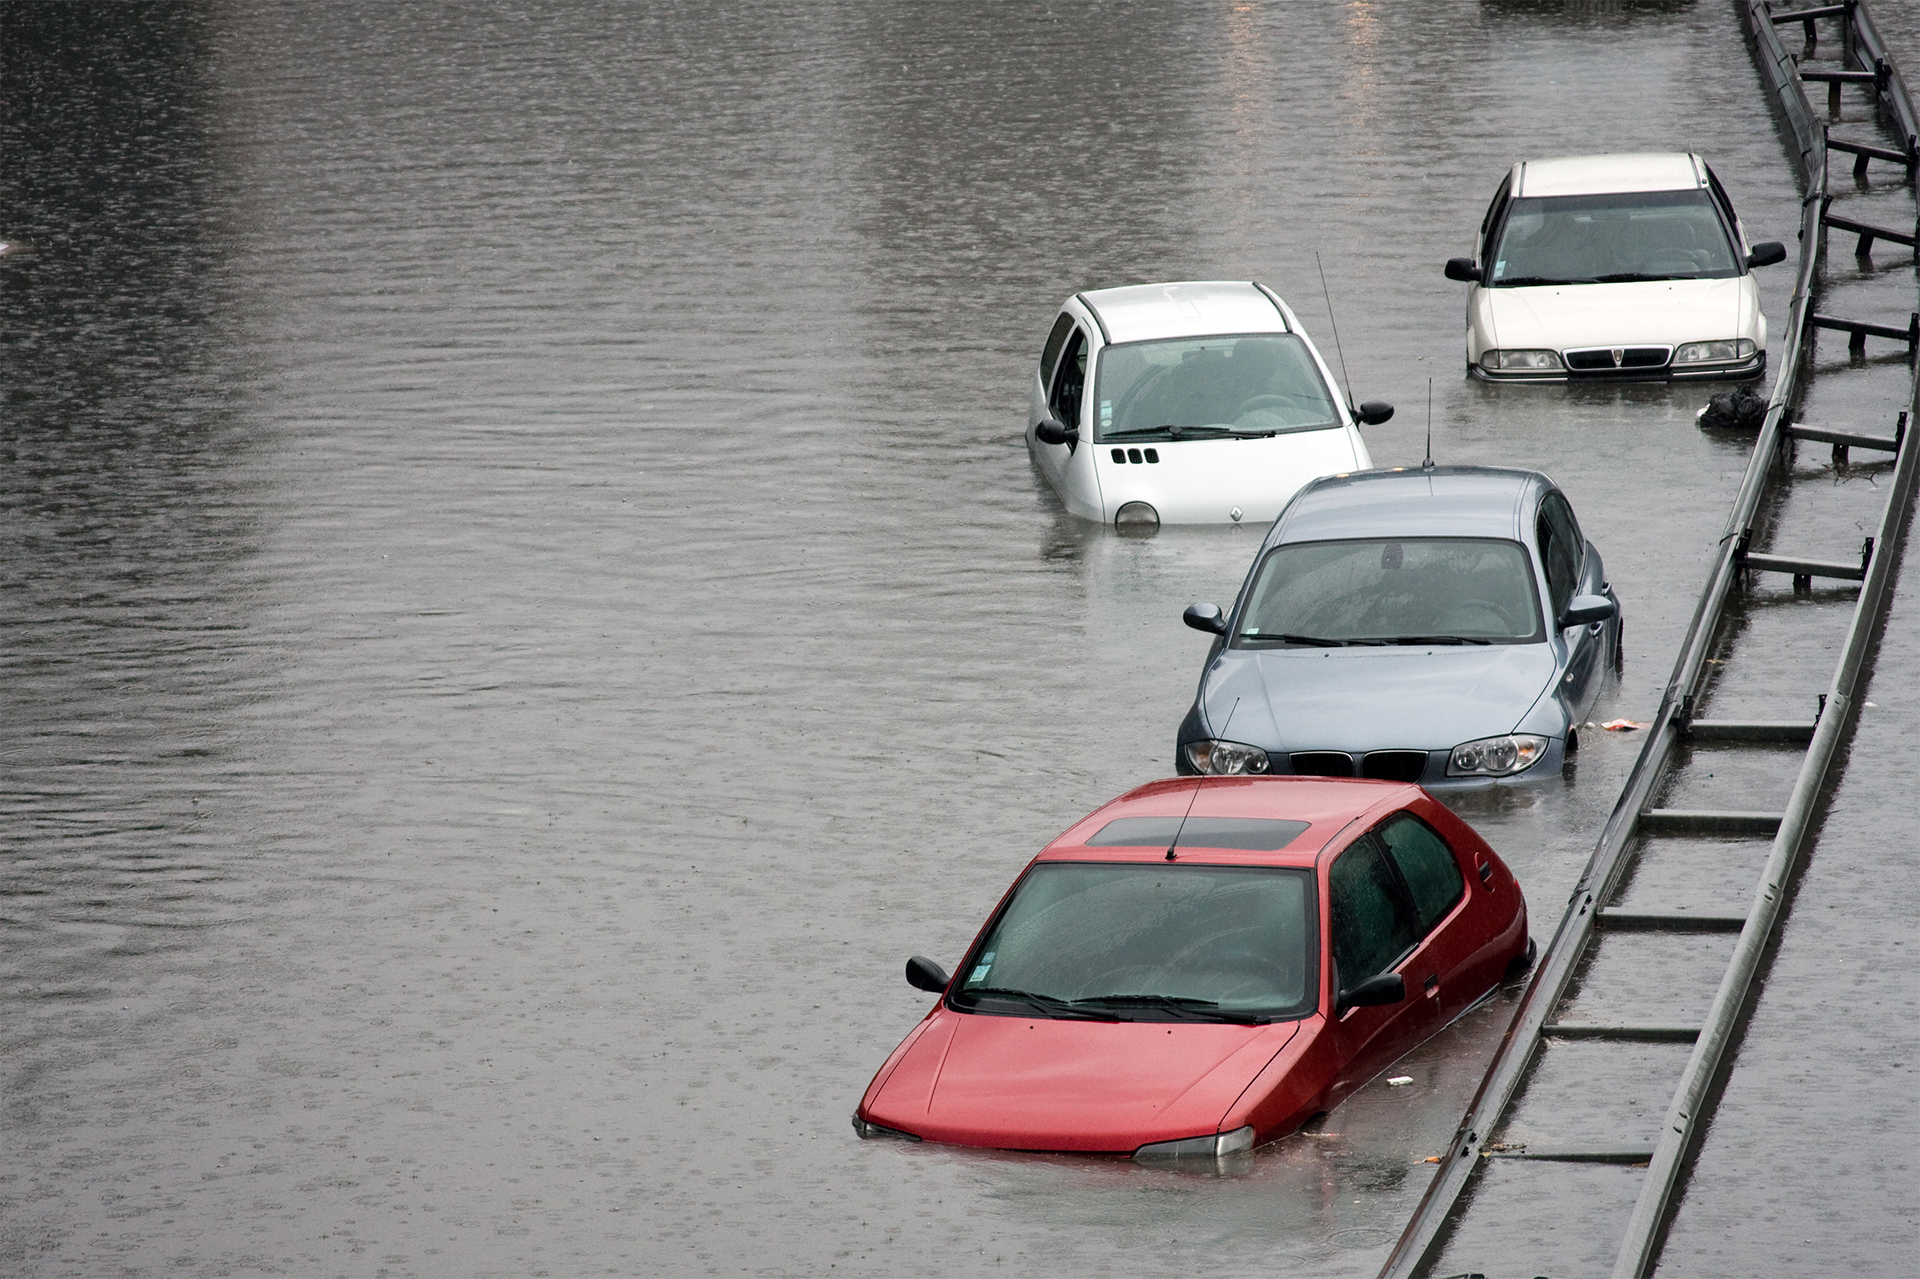 Line of flooded cars